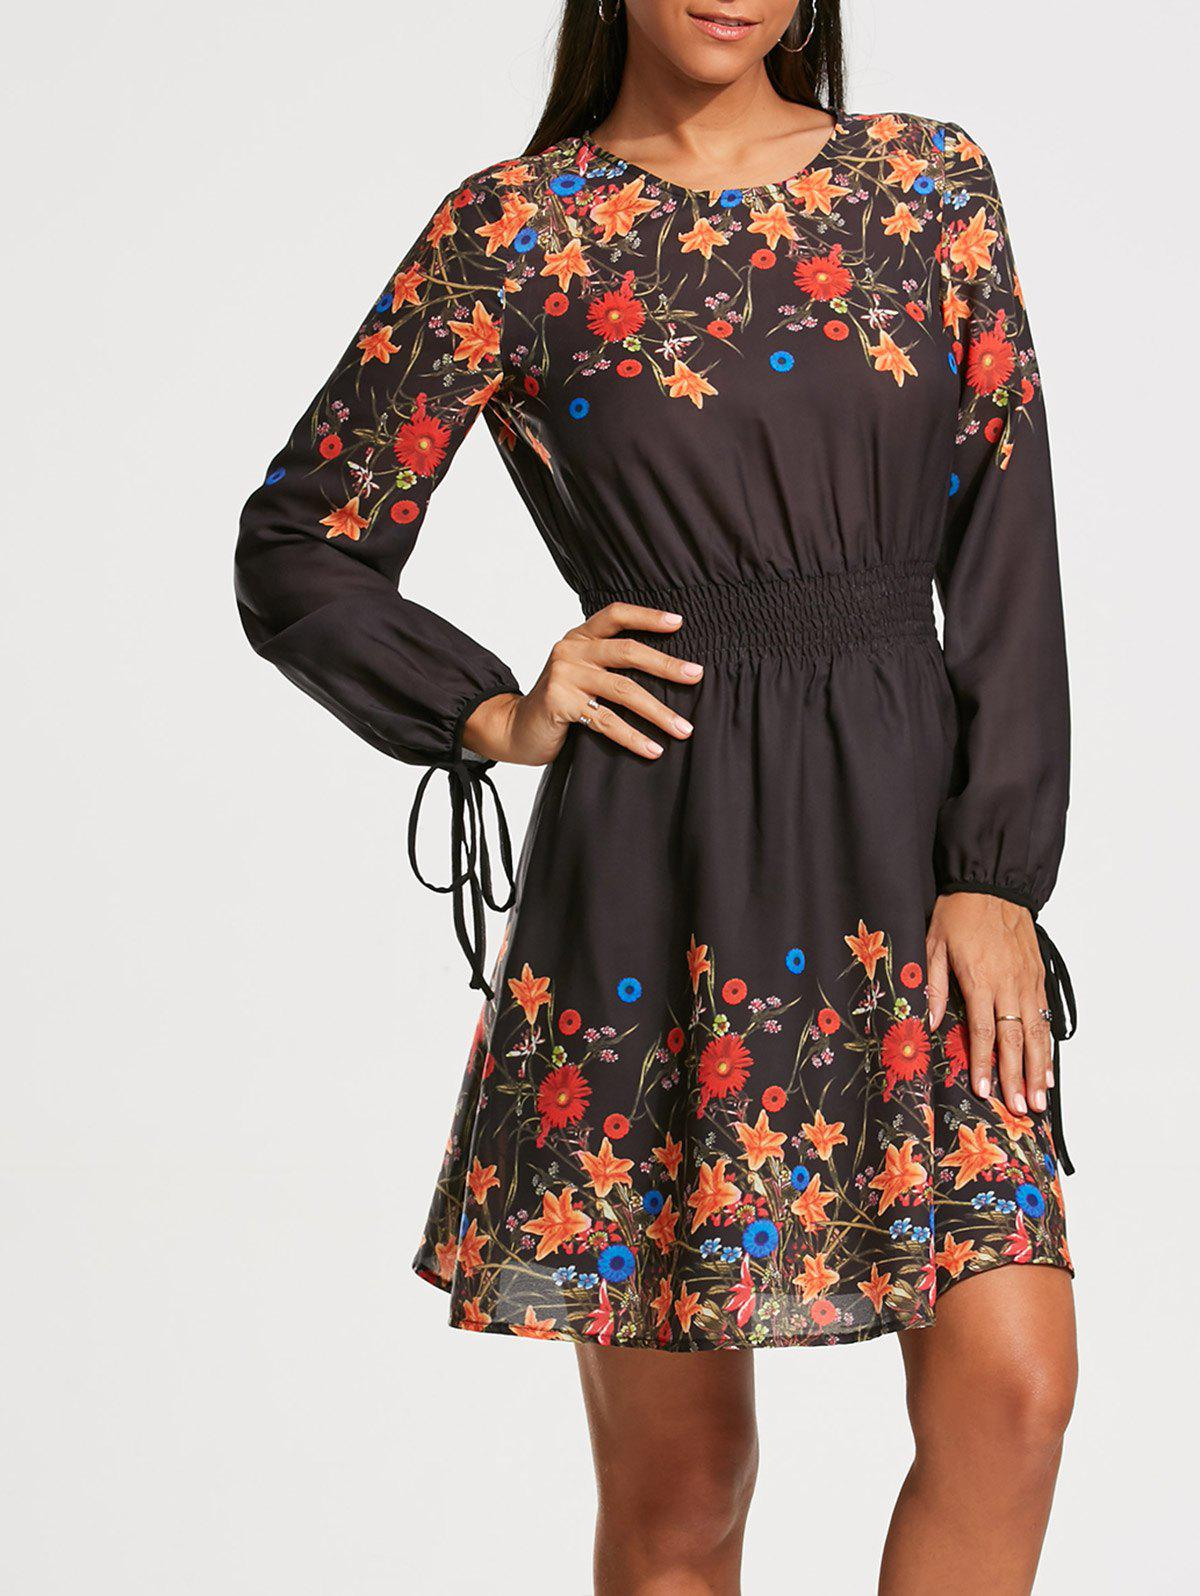 Elastic Waist Floral Print Long Sleeve Dress - COLORMIX XL